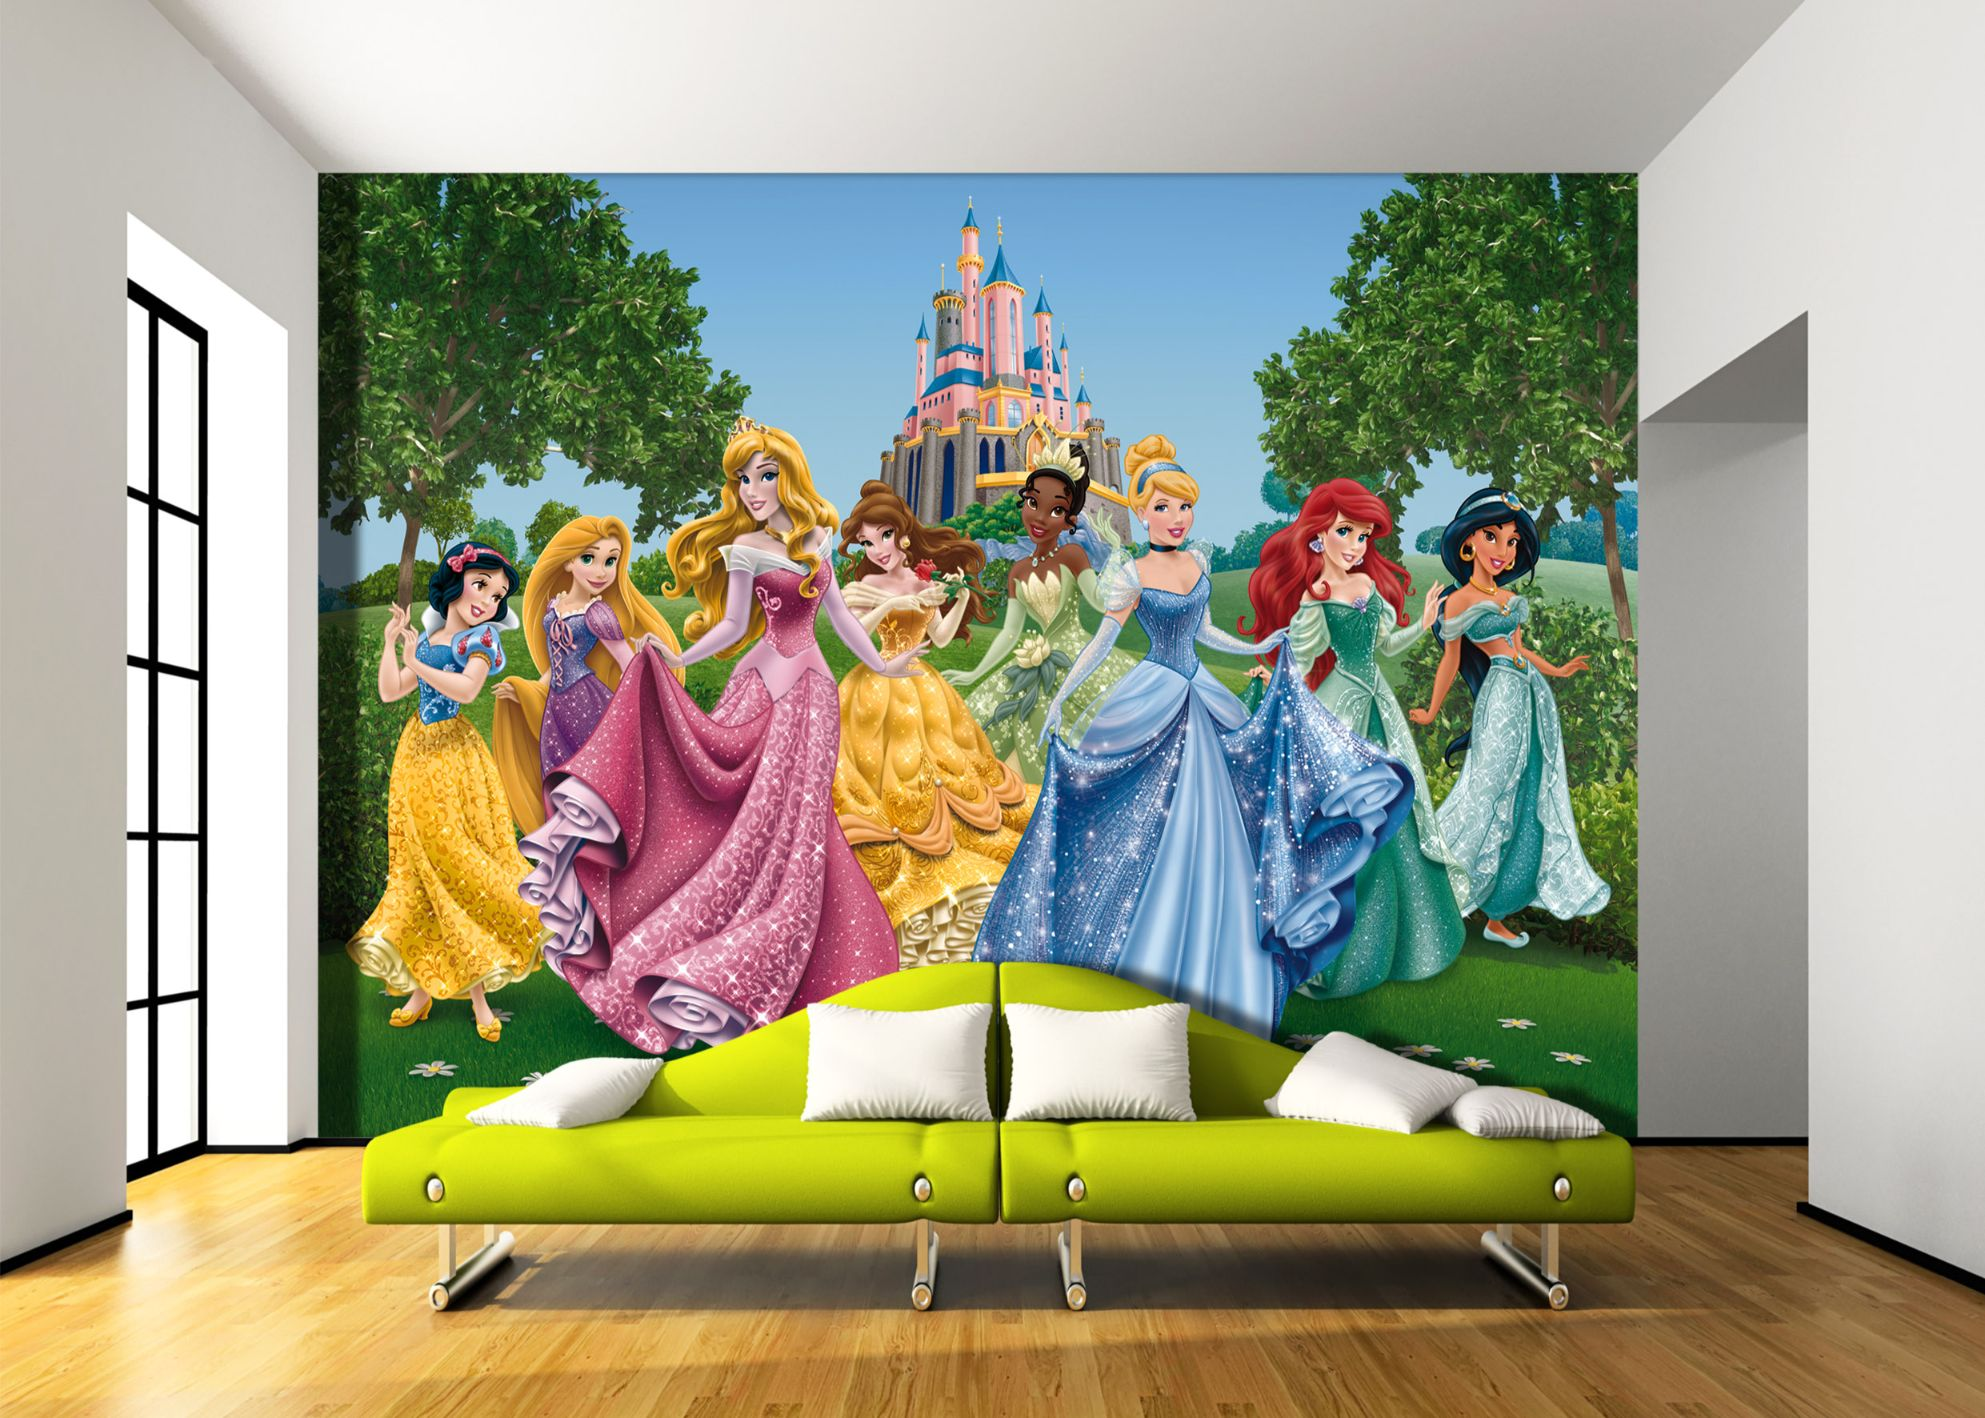 Disney Premium Princesses Wall Murals Buy It Now